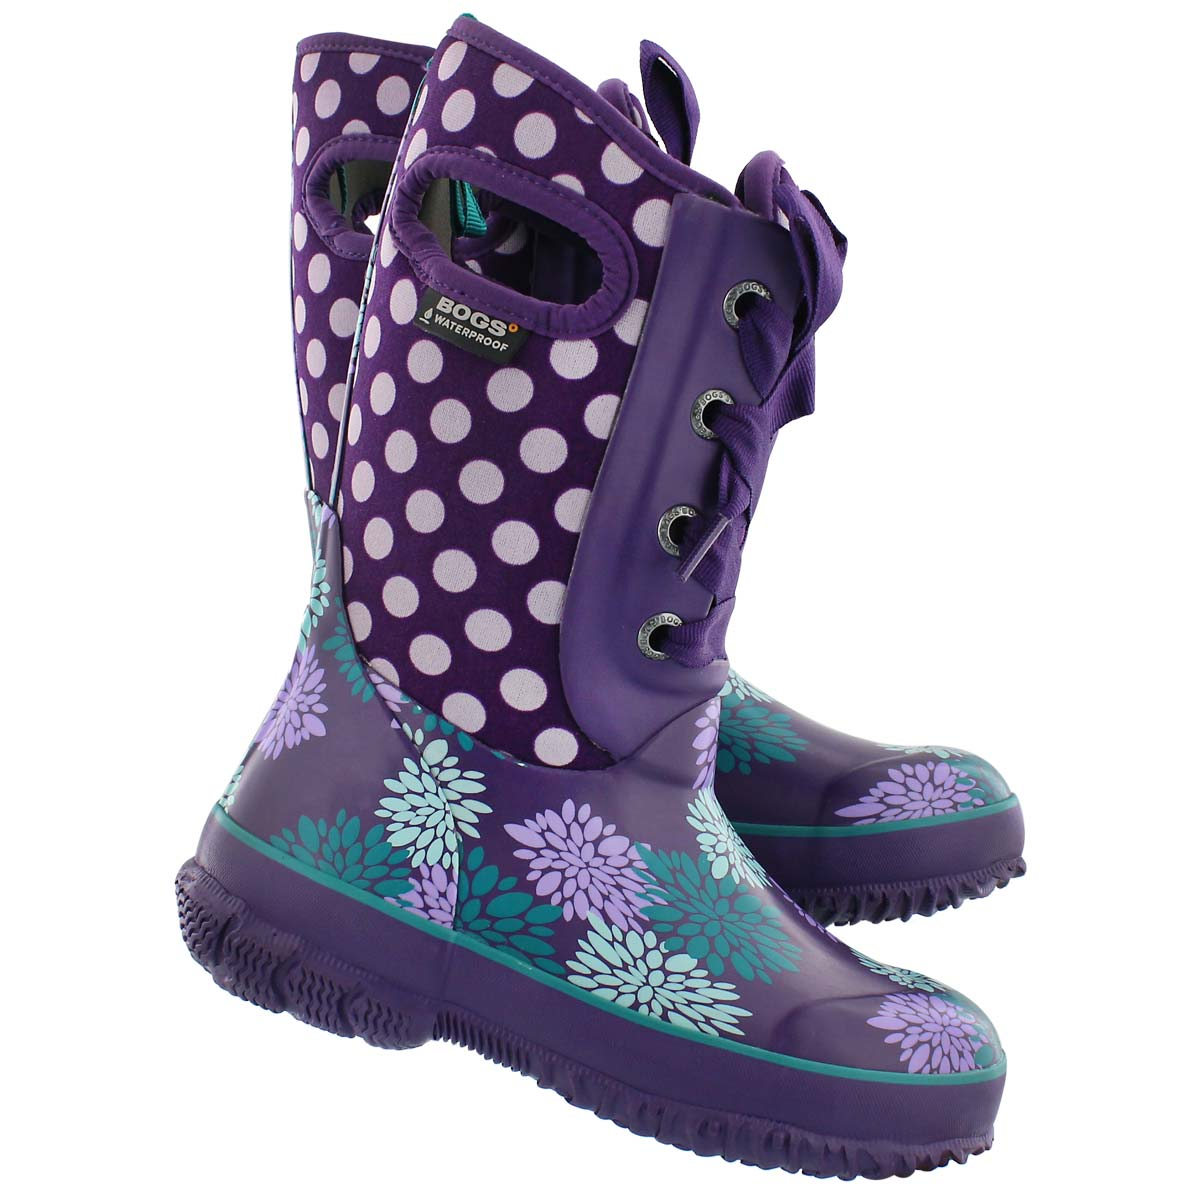 Grls Casey Pompons Dots grape wtpf boot